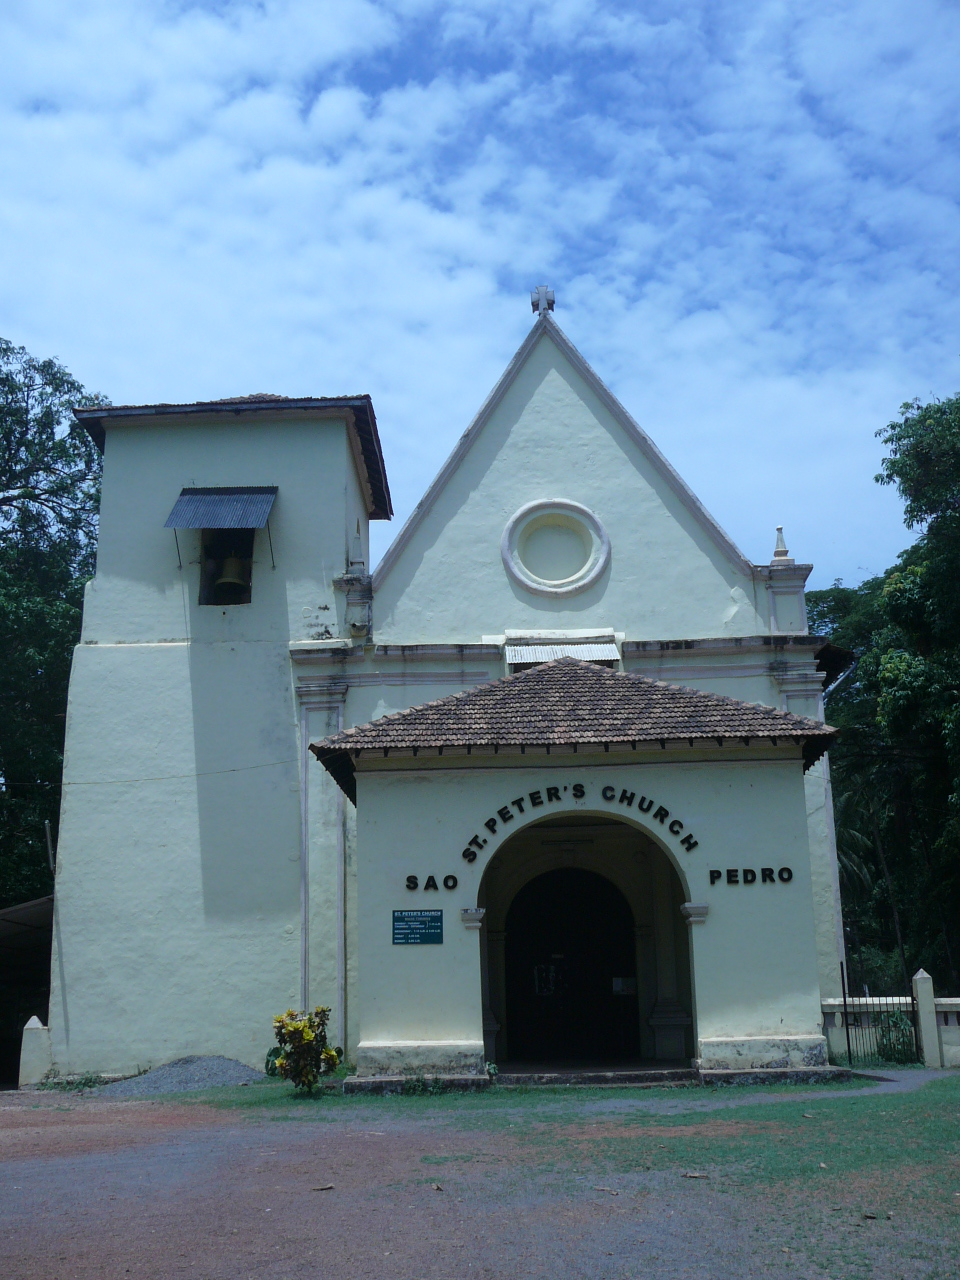 St. Peter's Church, Bainguinim, Goa